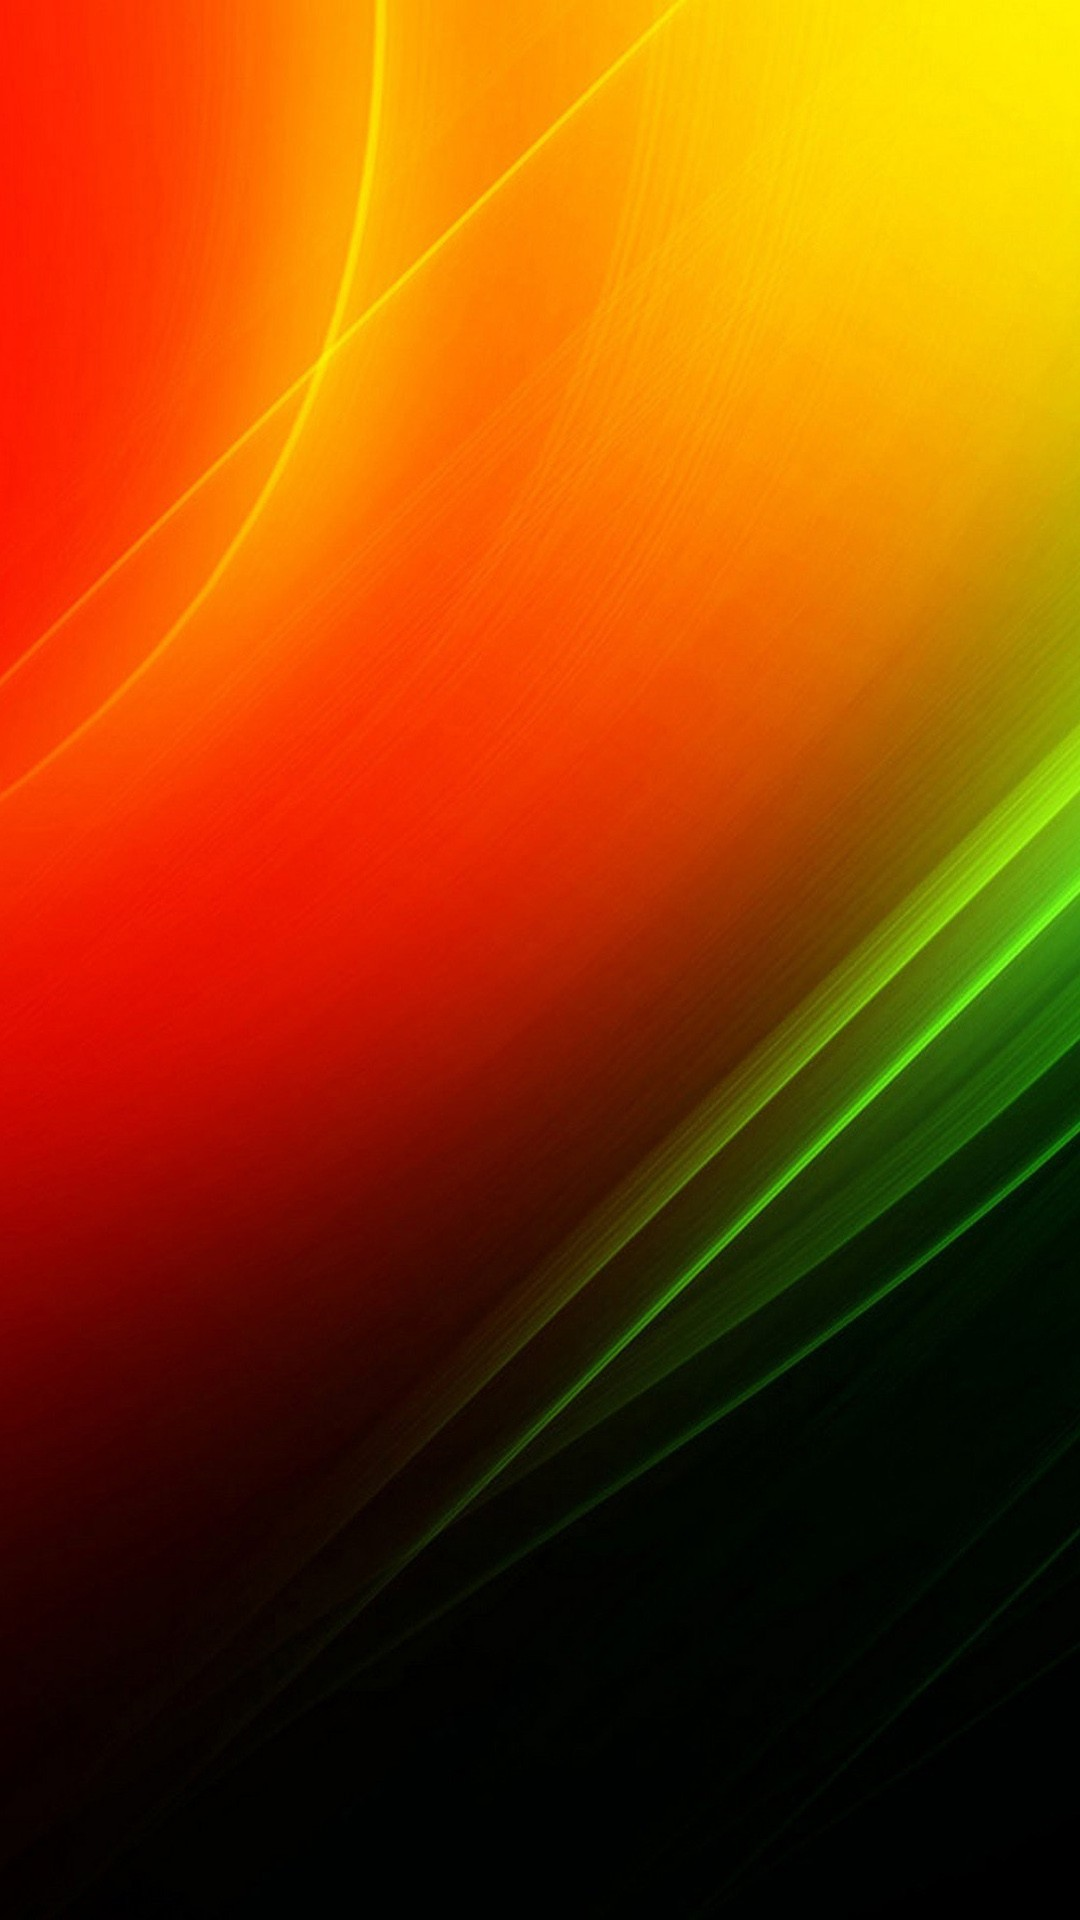 Red and Green color background